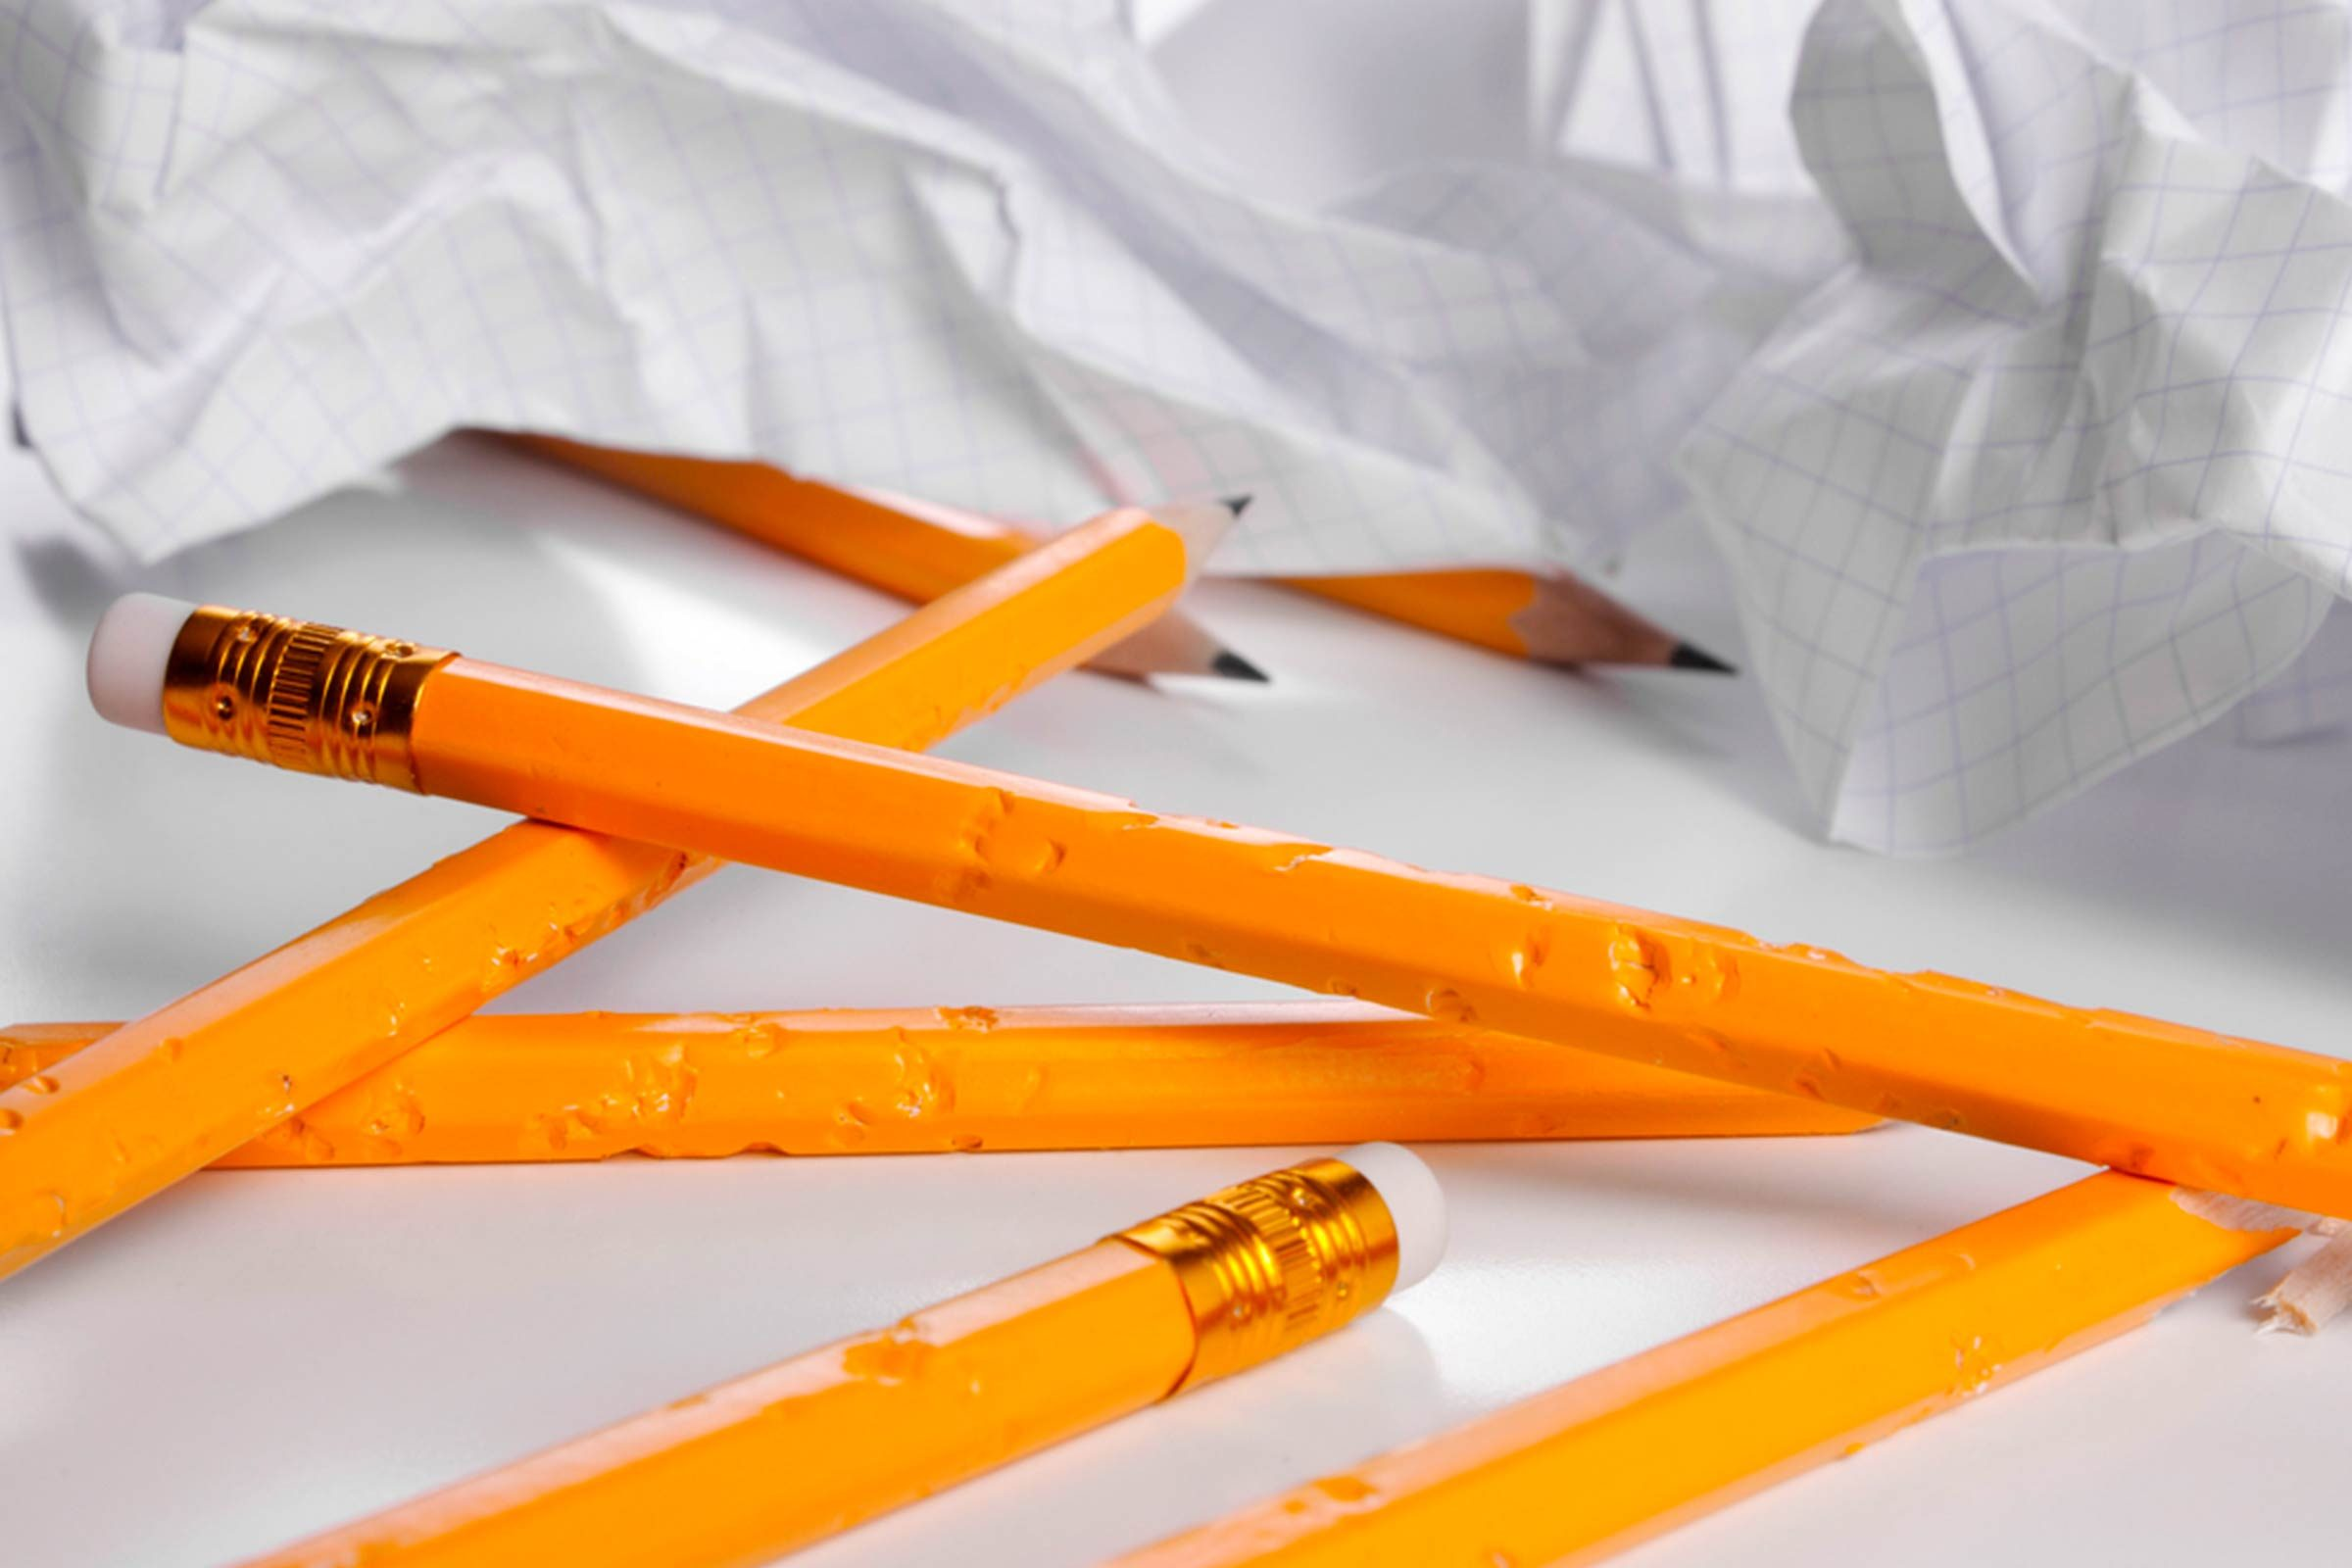 pencils with bite marks